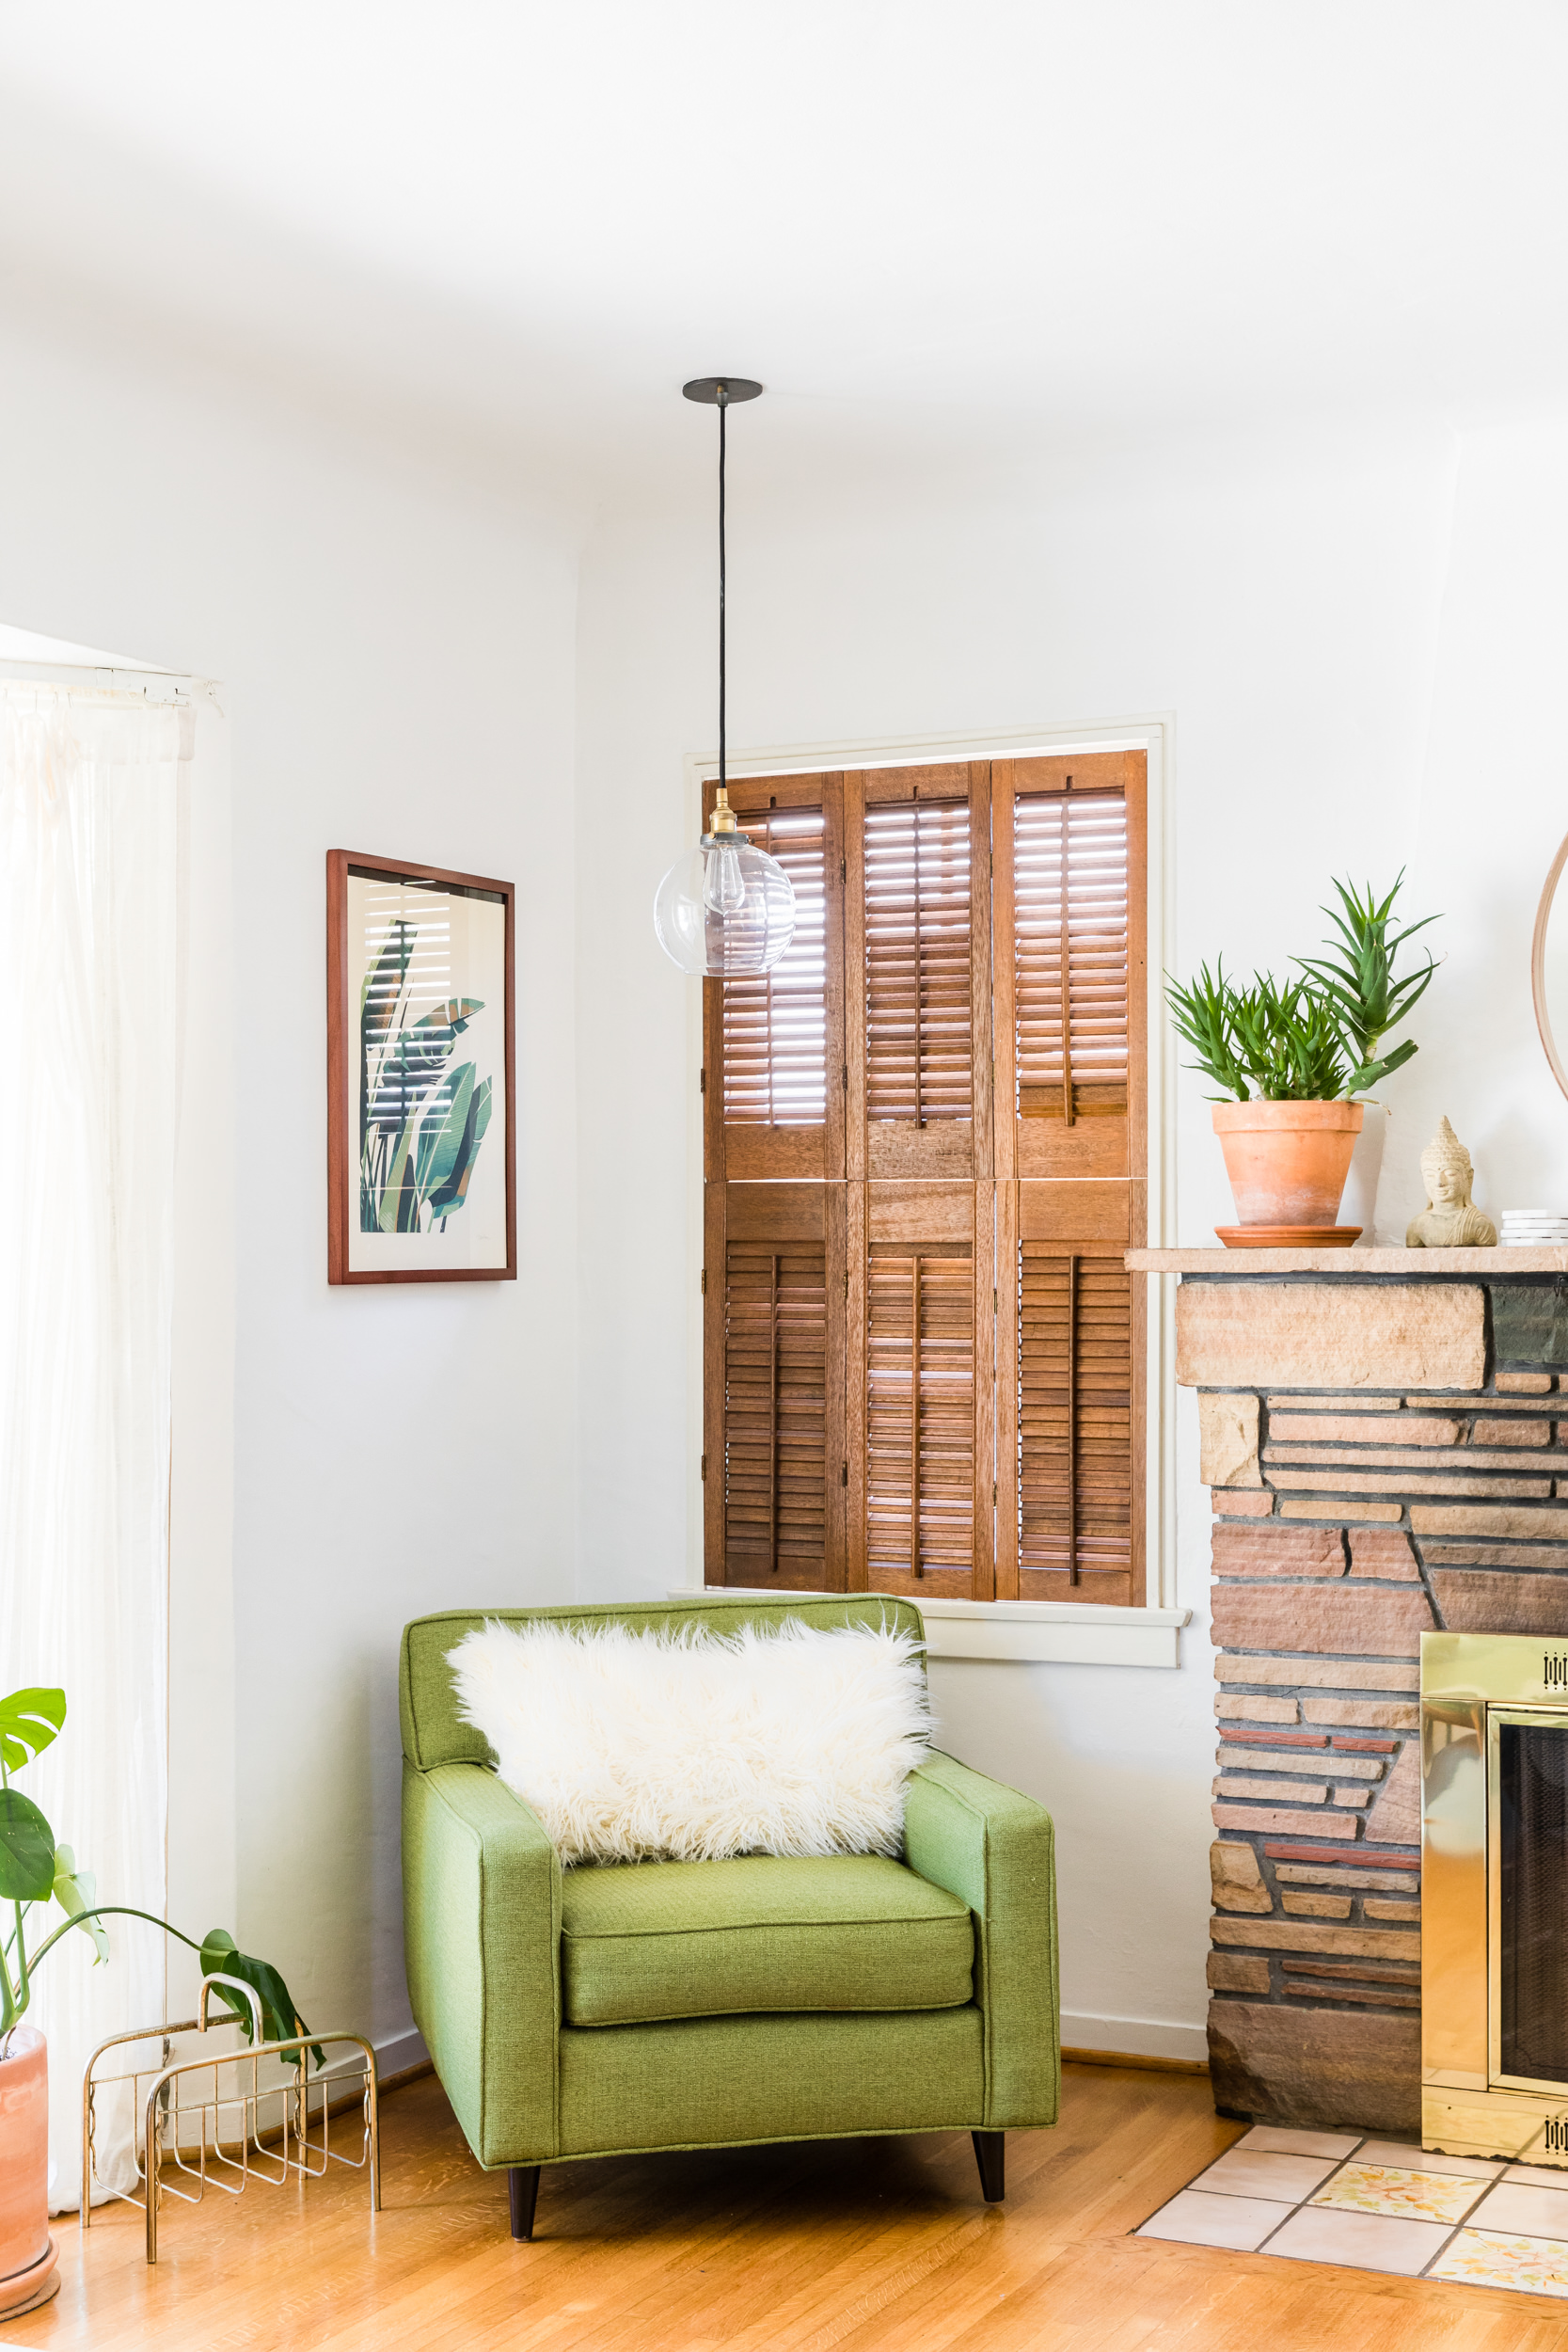 Mid century modern living room with glass pendant and green chair | Los Angeles interior photographer